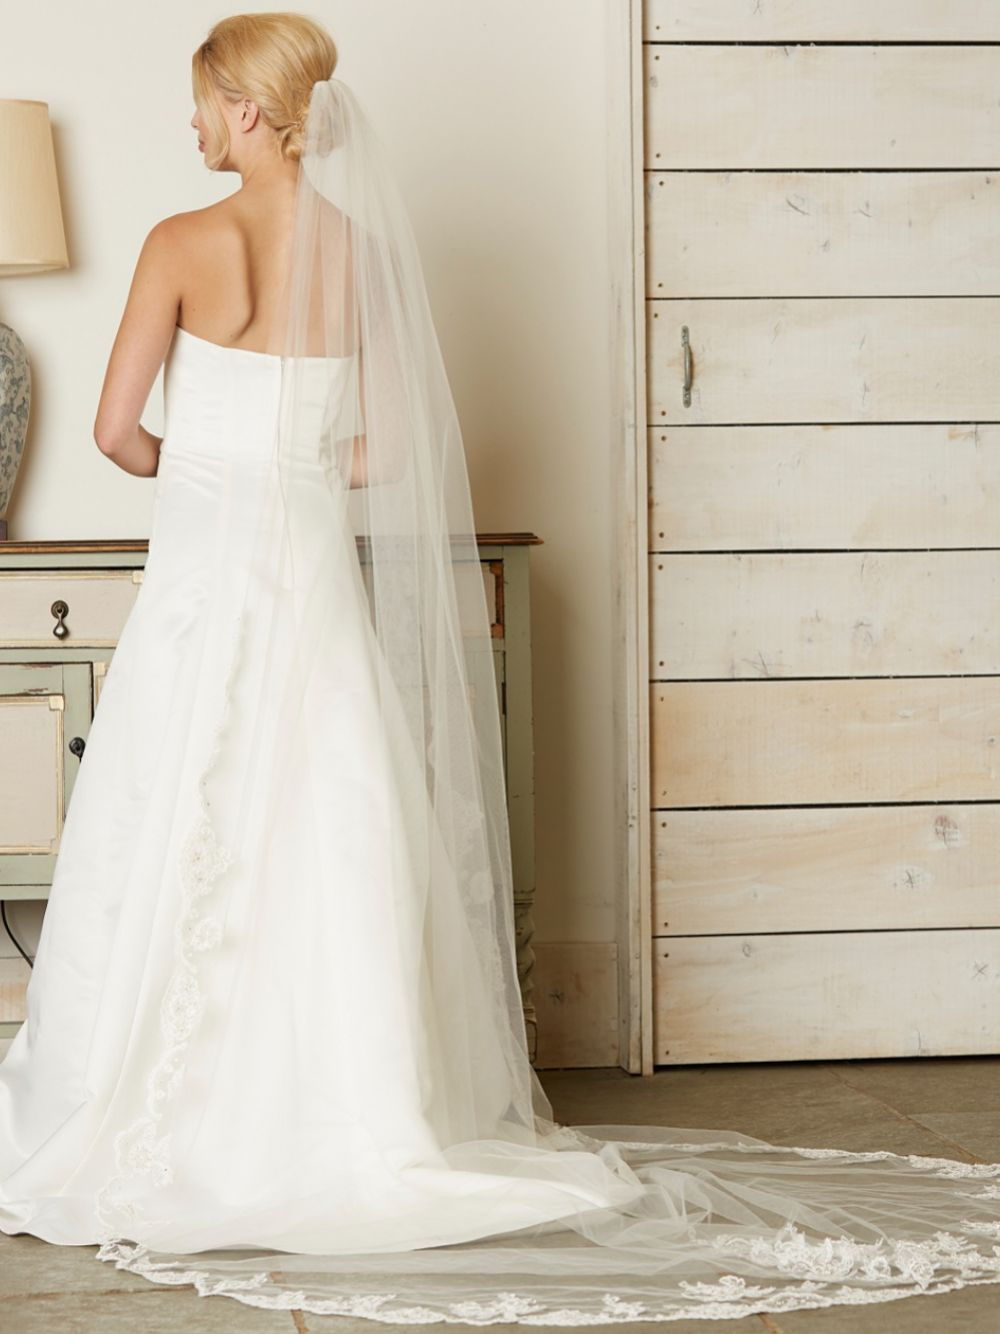 Linzi Jay Single Tier Ivory Cathedral Veil with Beaded Lace Edge V742